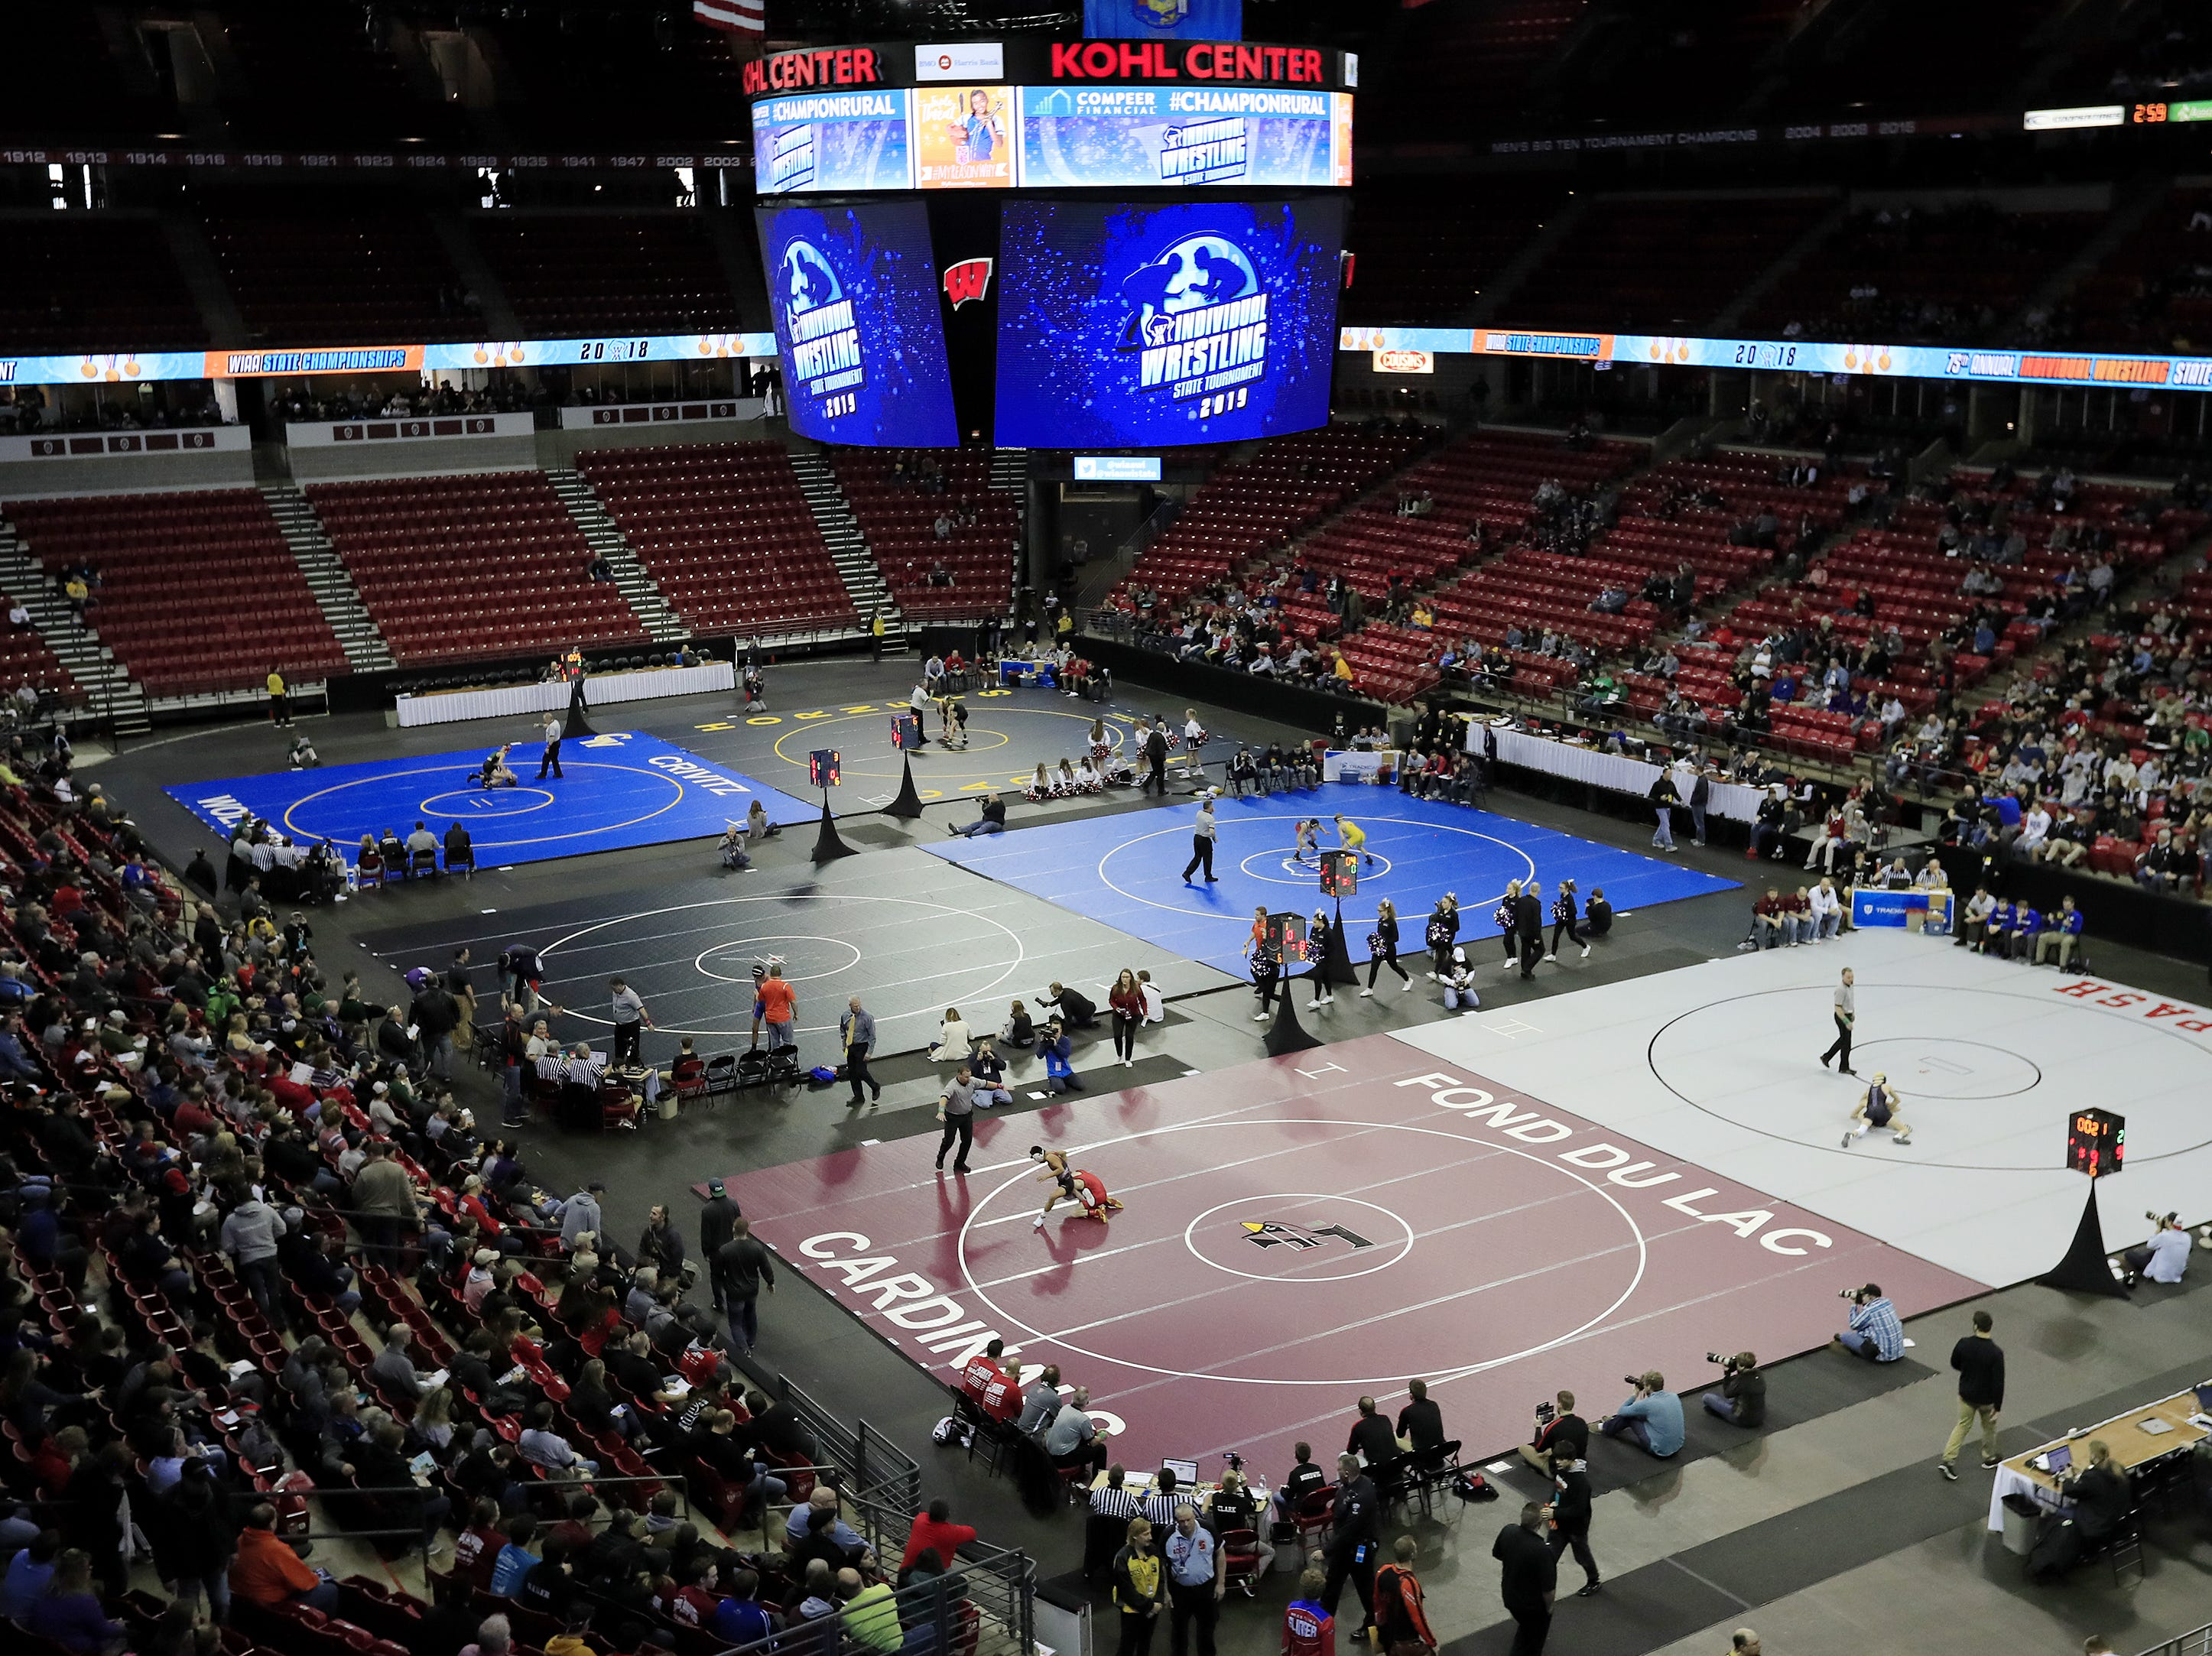 Preliminary matches are underway at the WIAA state individual wrestling tournament at the Kohl Center on Thursday, February 21, 2019 in Madison, Wis. Adam Wesley/USA TODAY NETWORK-Wisconsin